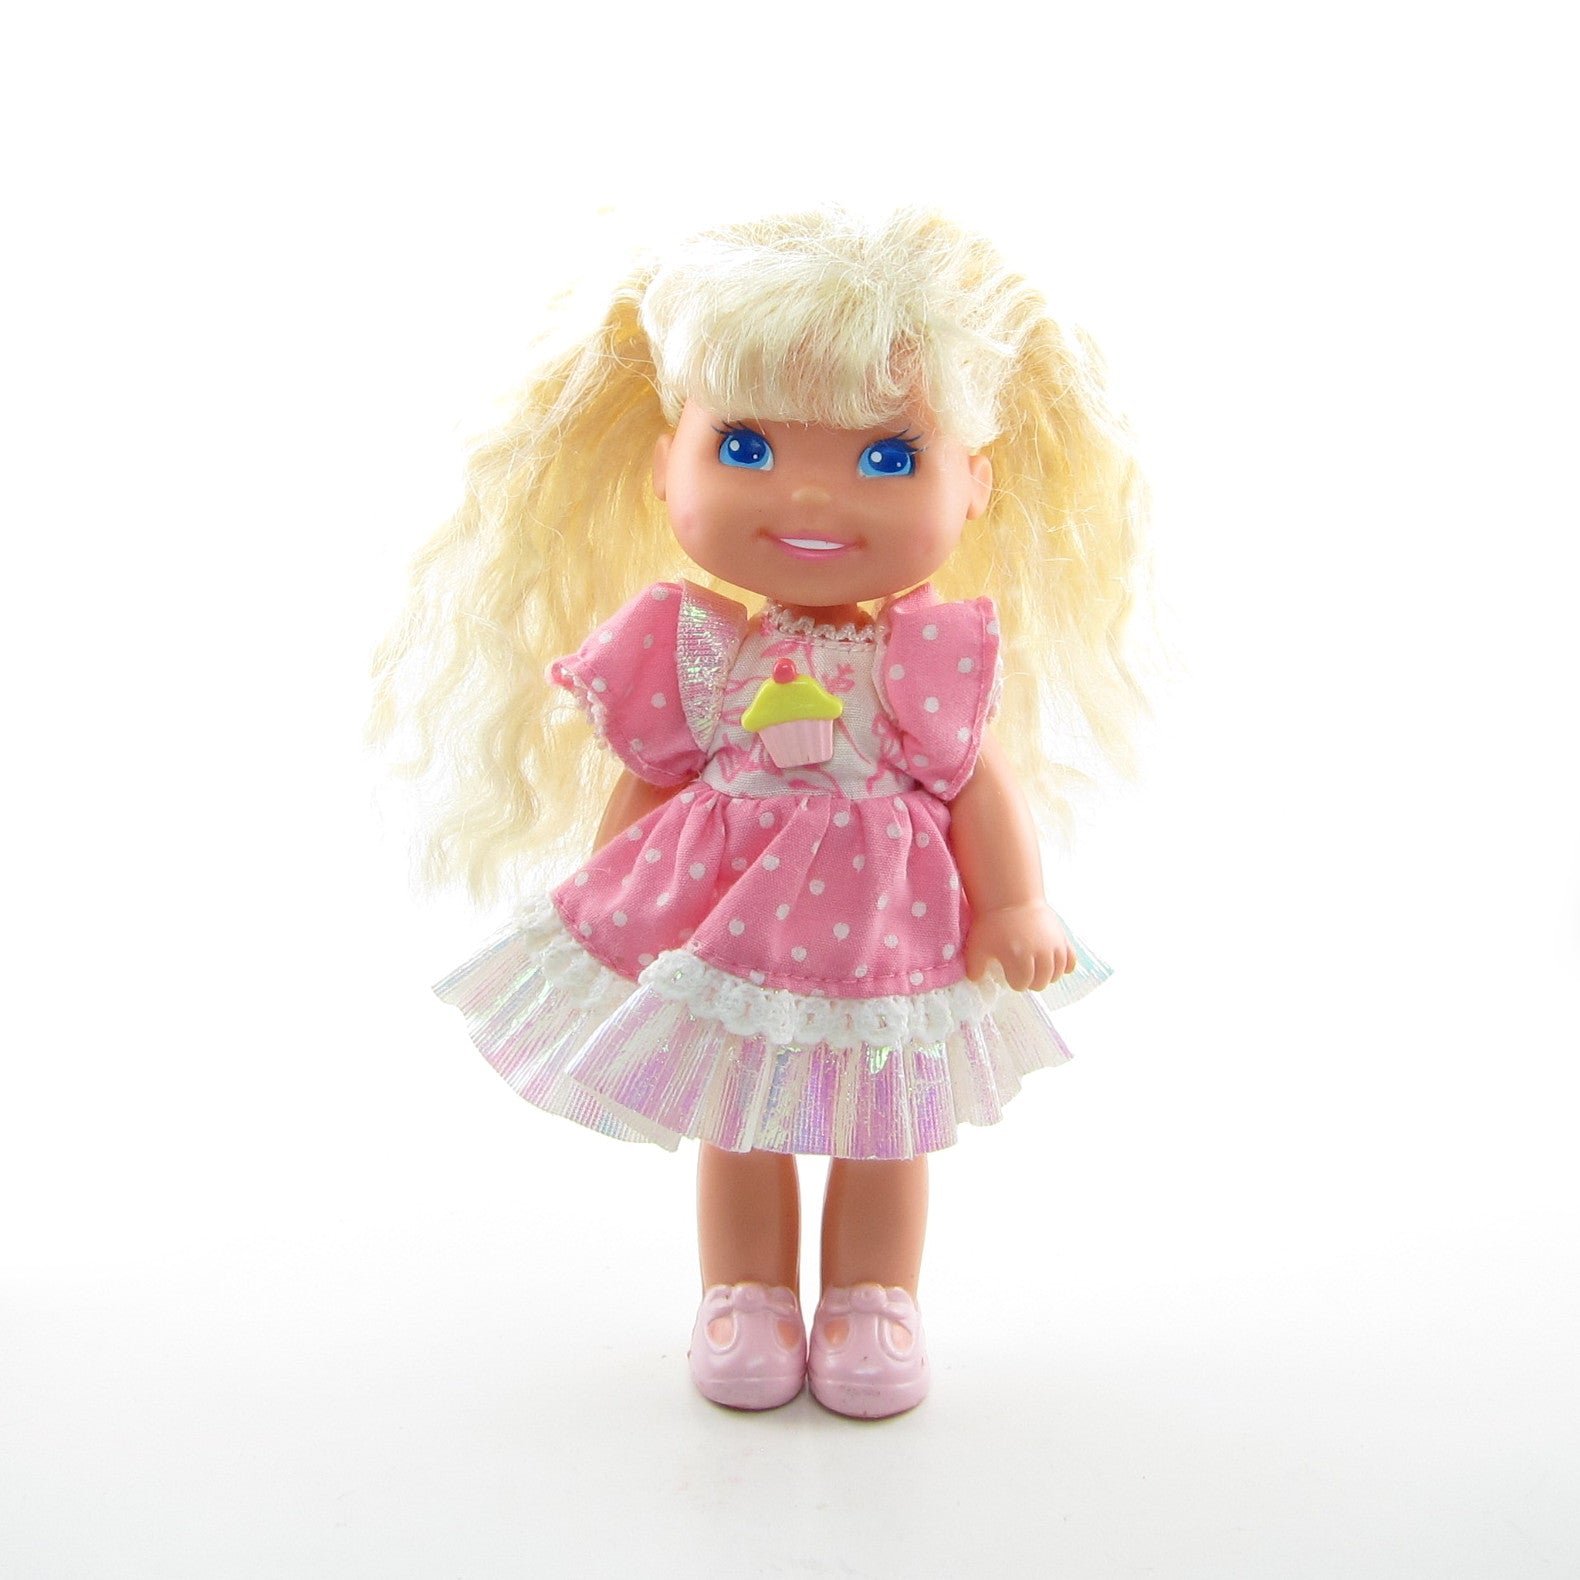 Cherry Merry Muffin 1989 Second Issue doll